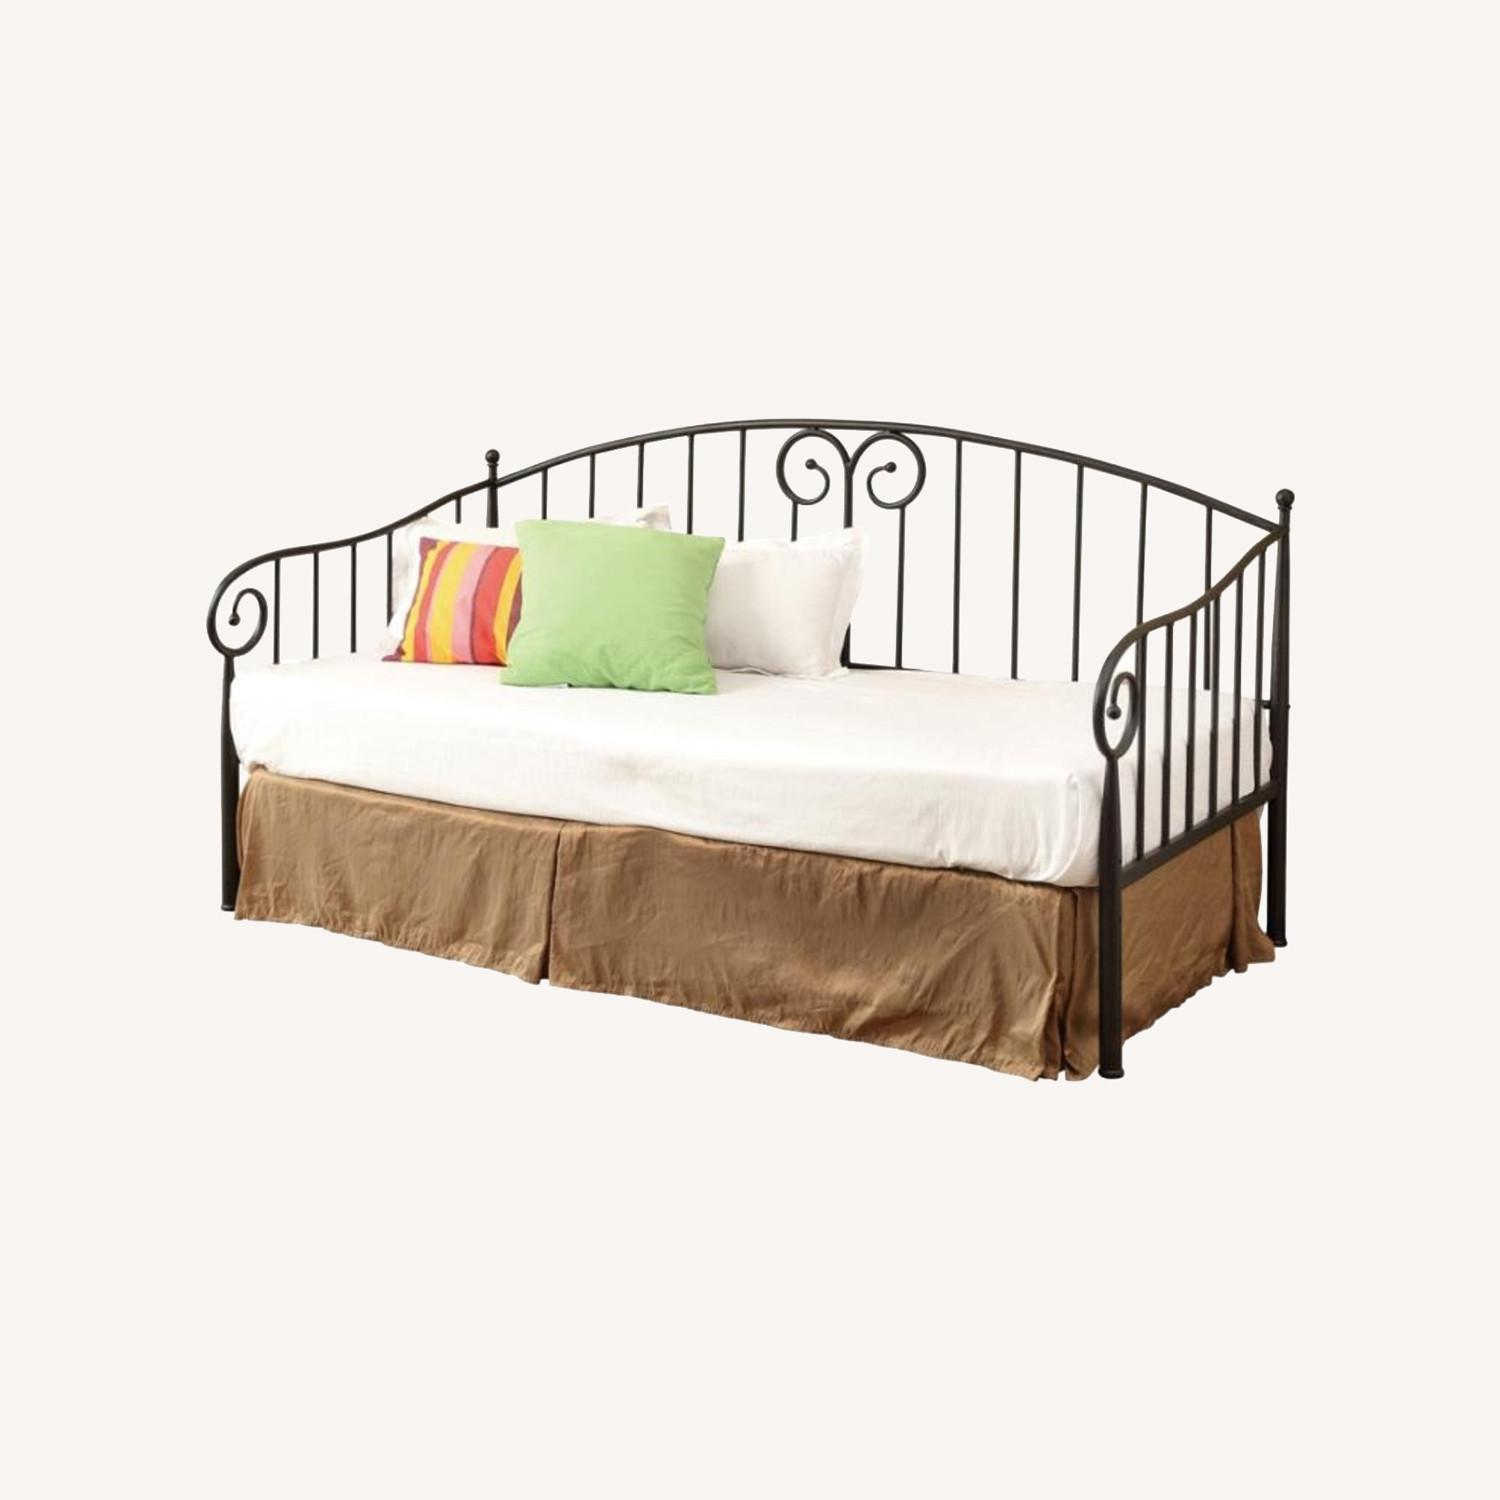 Twin Daybed In Black Finish W/ Sloped Rail Design - image-4